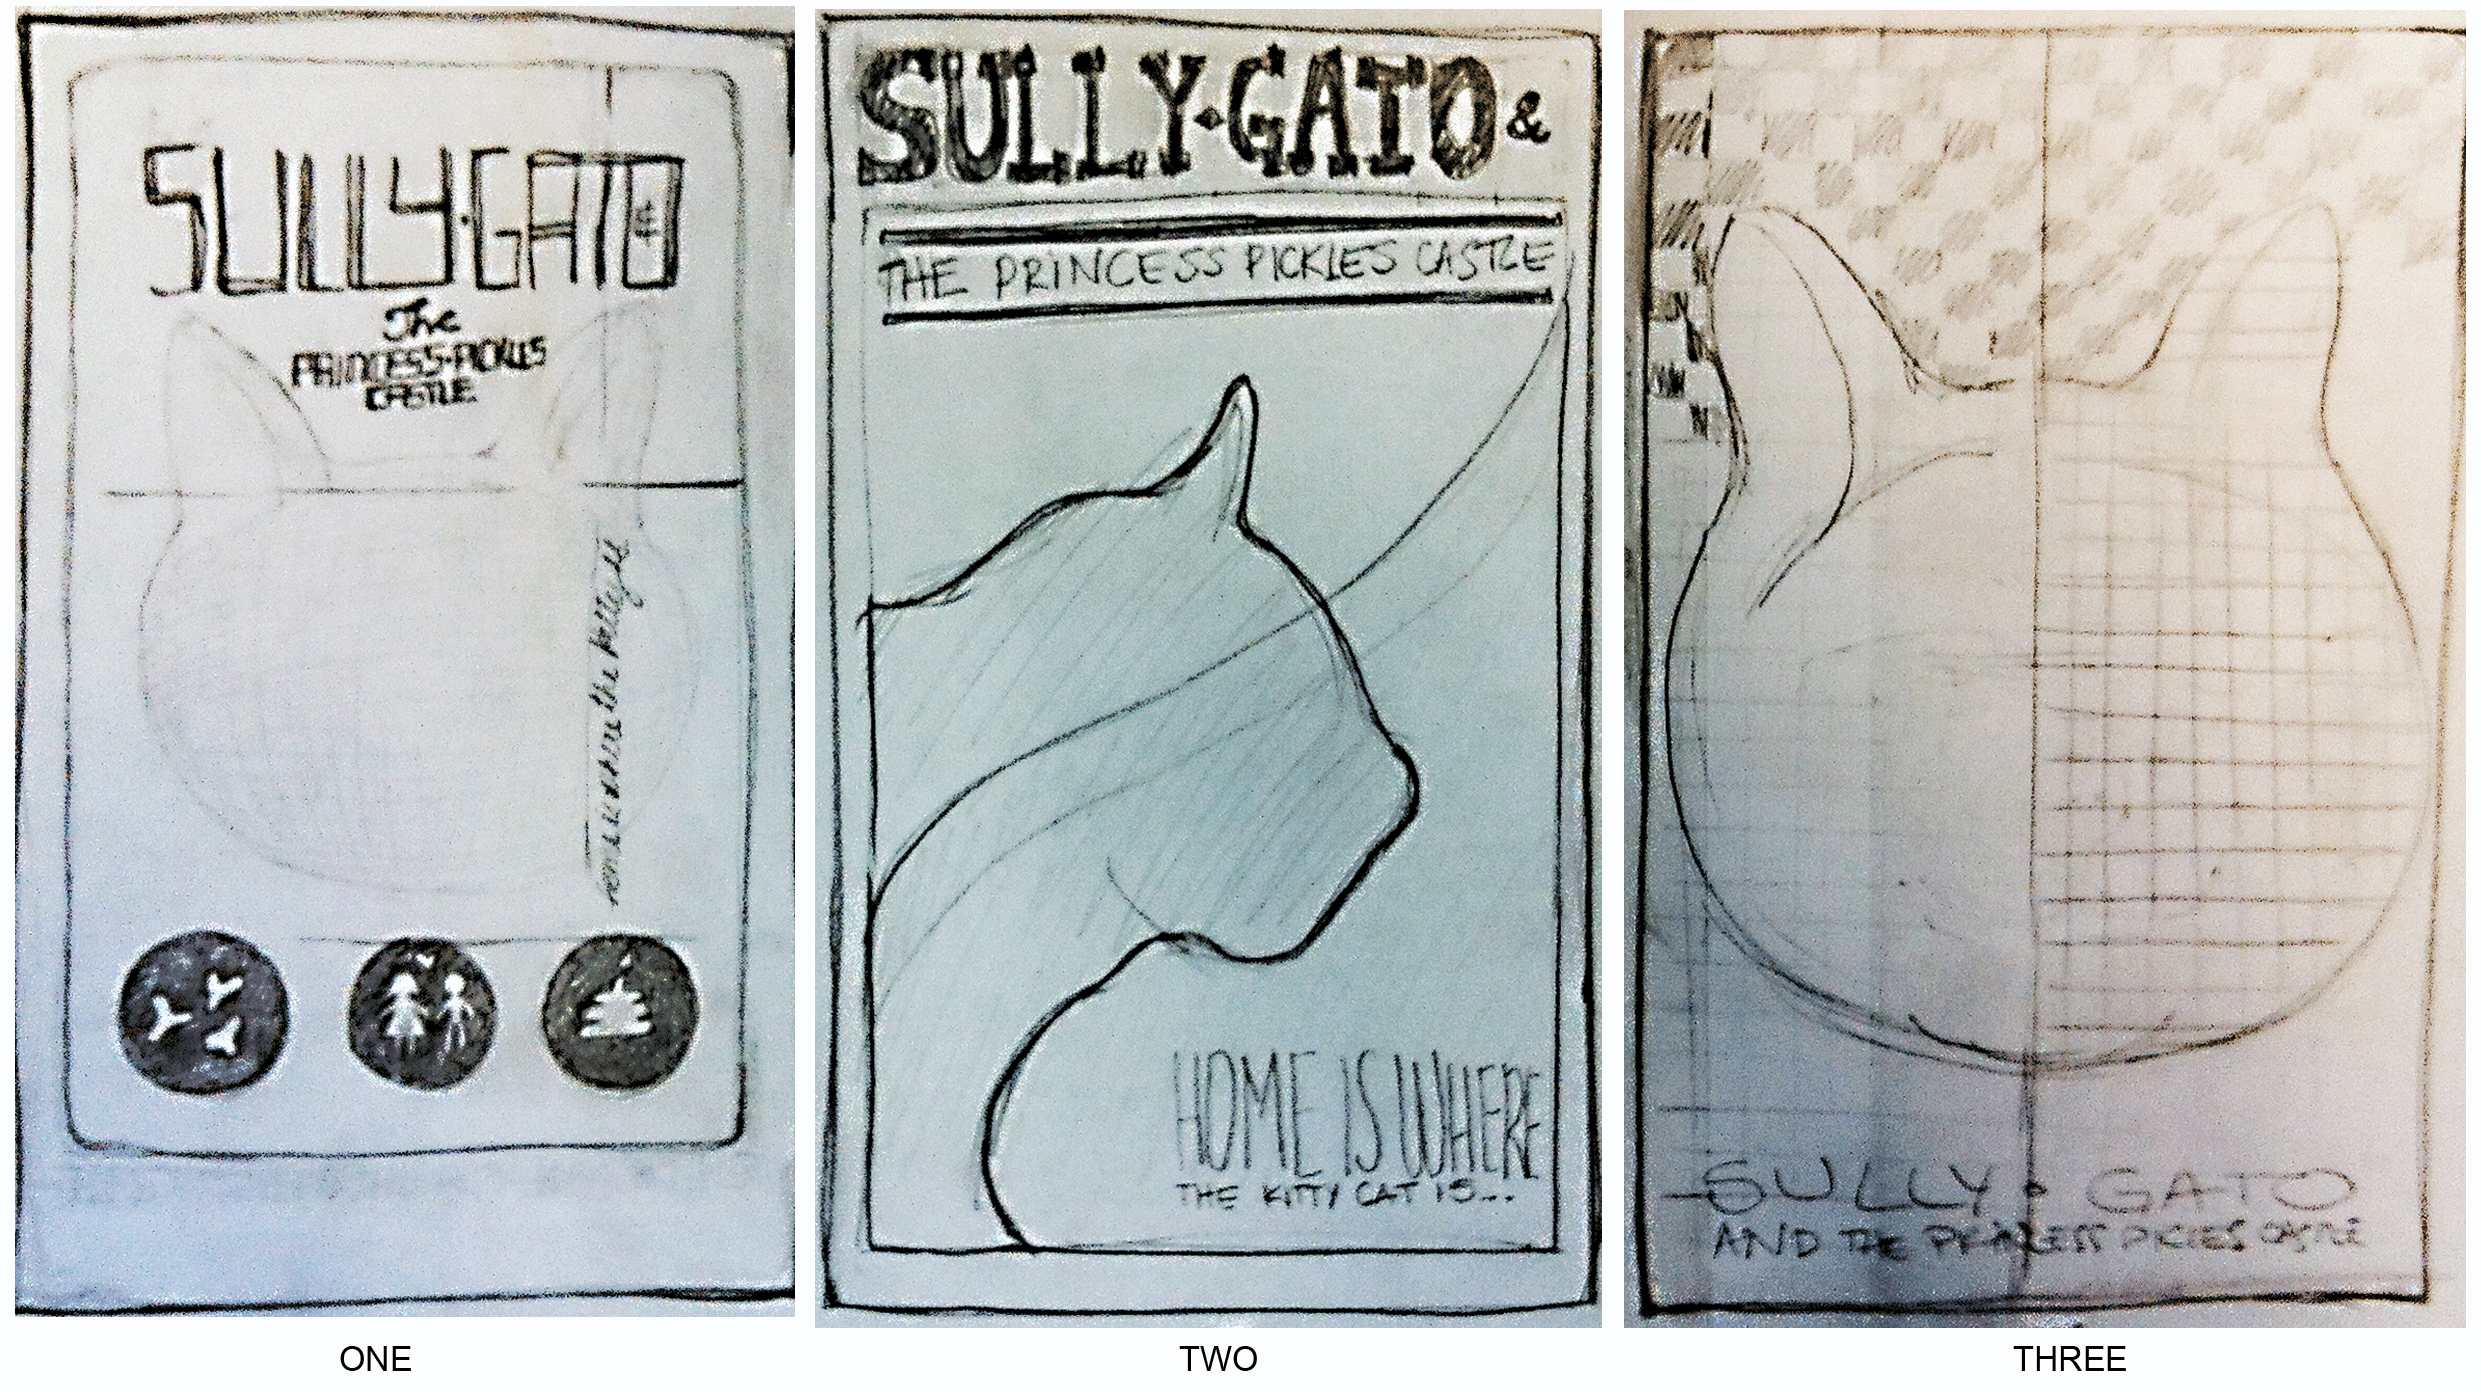 Sully Gato & The Princess Pickles Castle - image 2 - student project